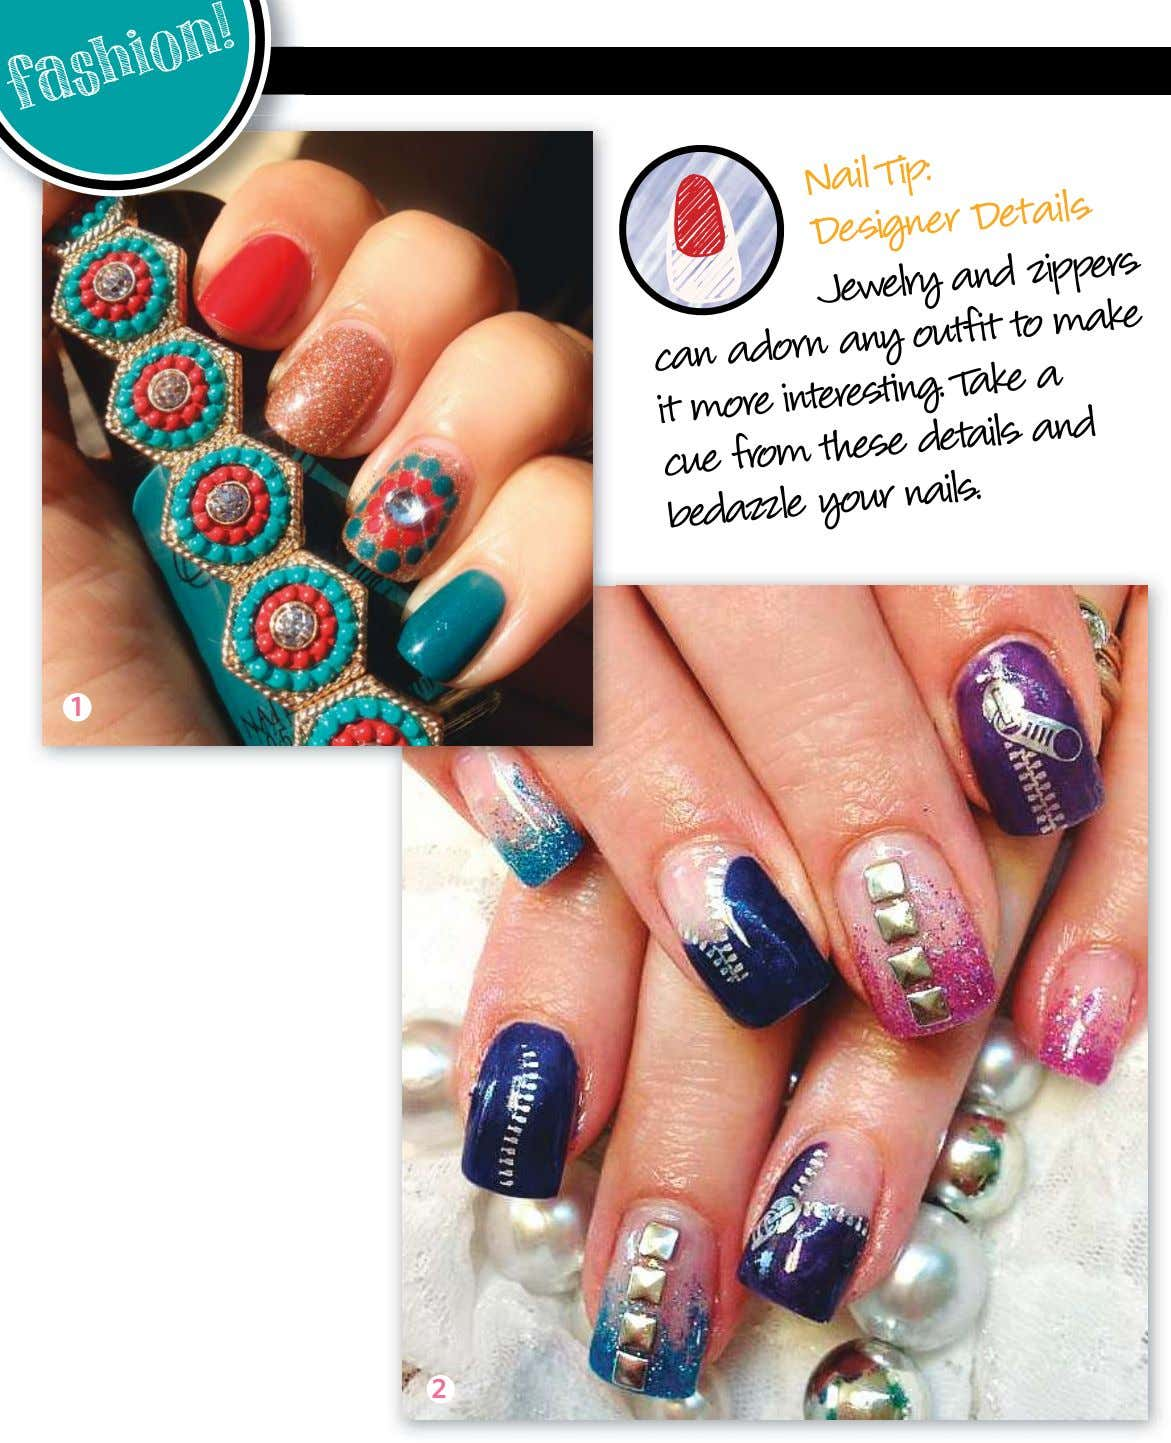 fashion ! Nail Tip: Designer Details Jewelry and to and a zippers can adorn outfit